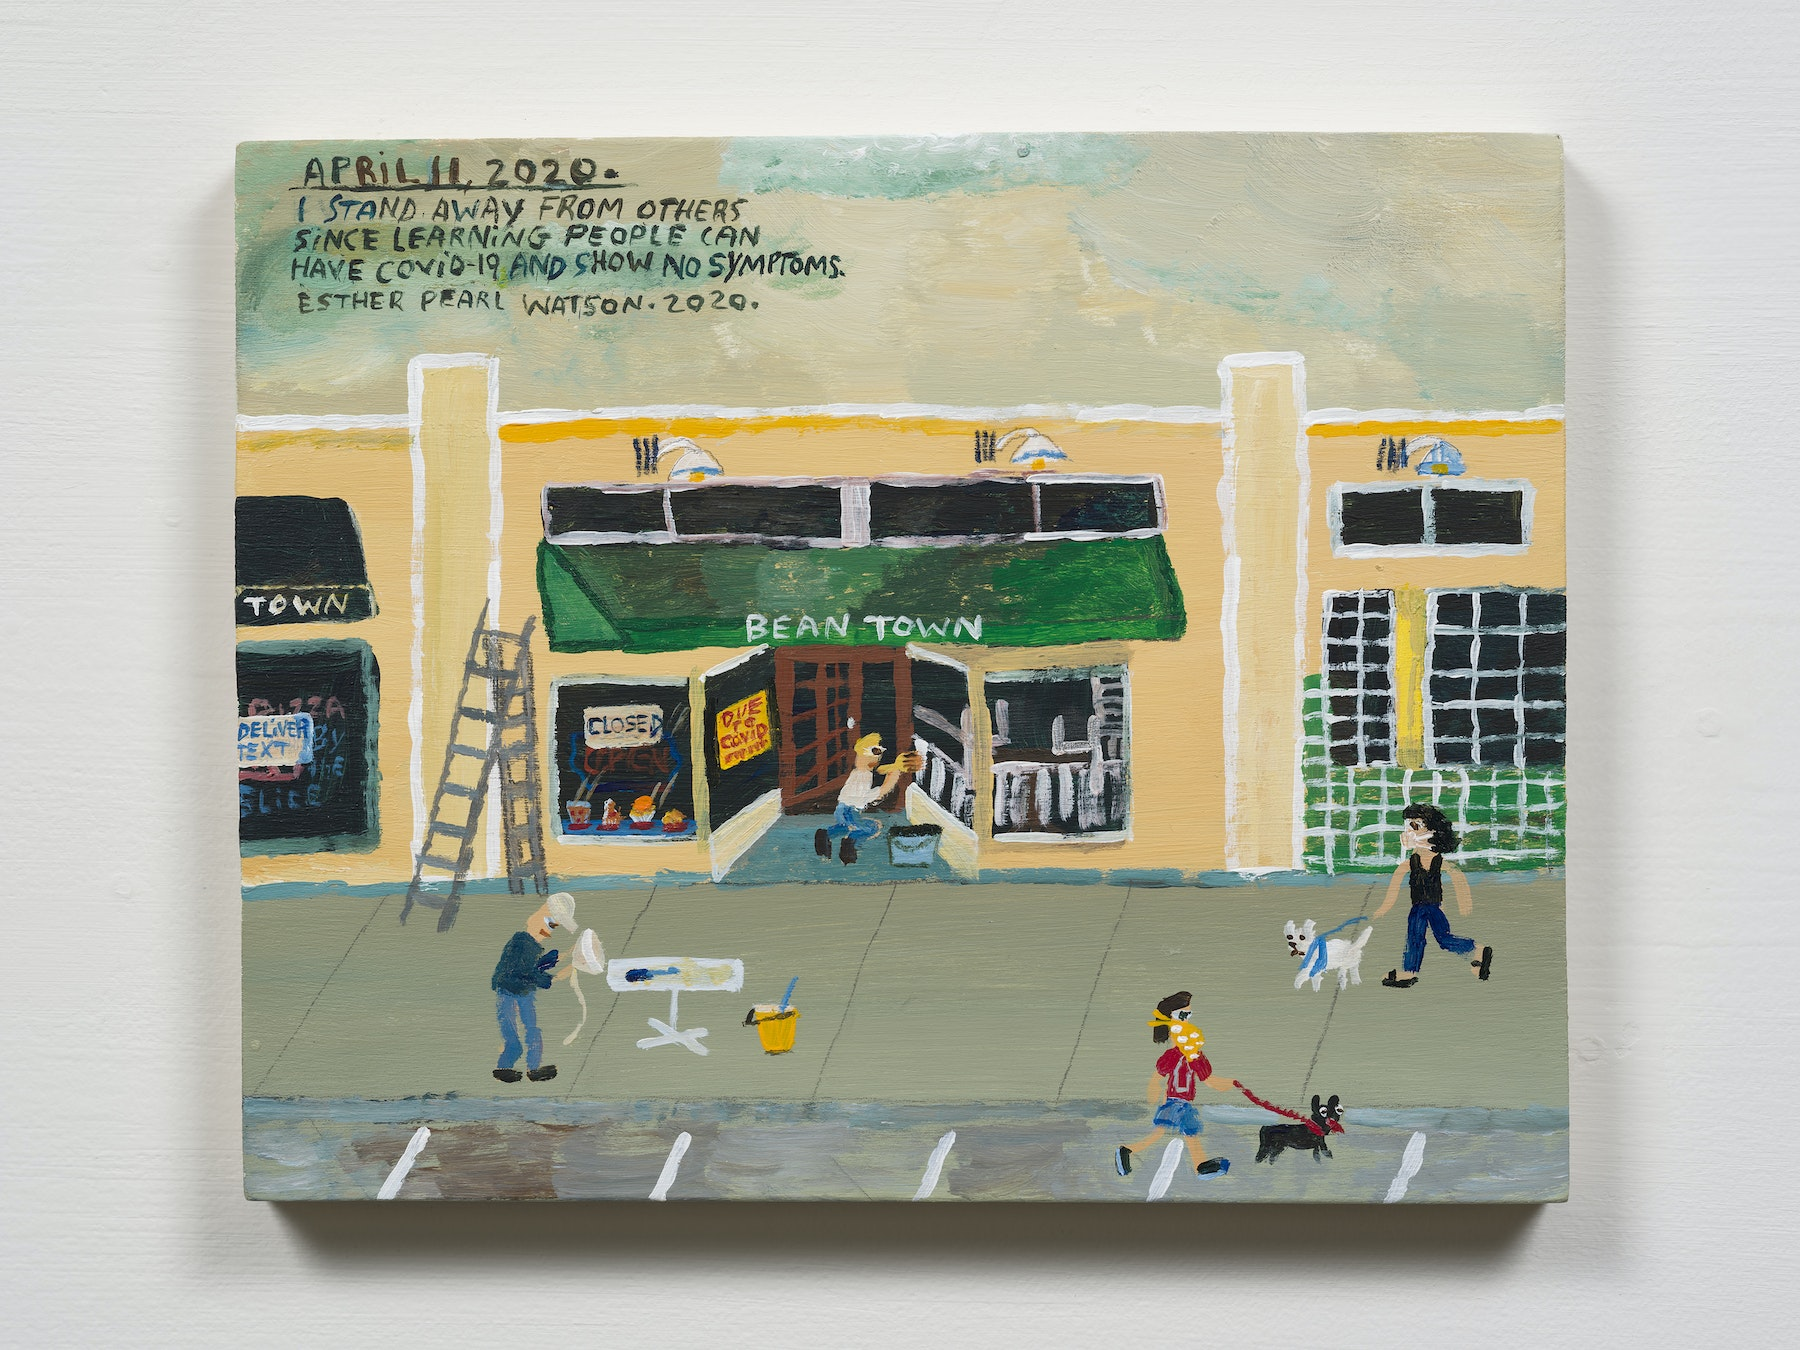 """Esther Pearl Watson """"April 11, I Stand Away From Others,"""" 2020 Acrylic with pencil on panel 8 x 10"""" [HxW] (20.32 x 25.4 cm) Inventory #EPW258 Courtesy of the artist and Vielmetter Los Angeles Photo credit: Jeff Mclane"""